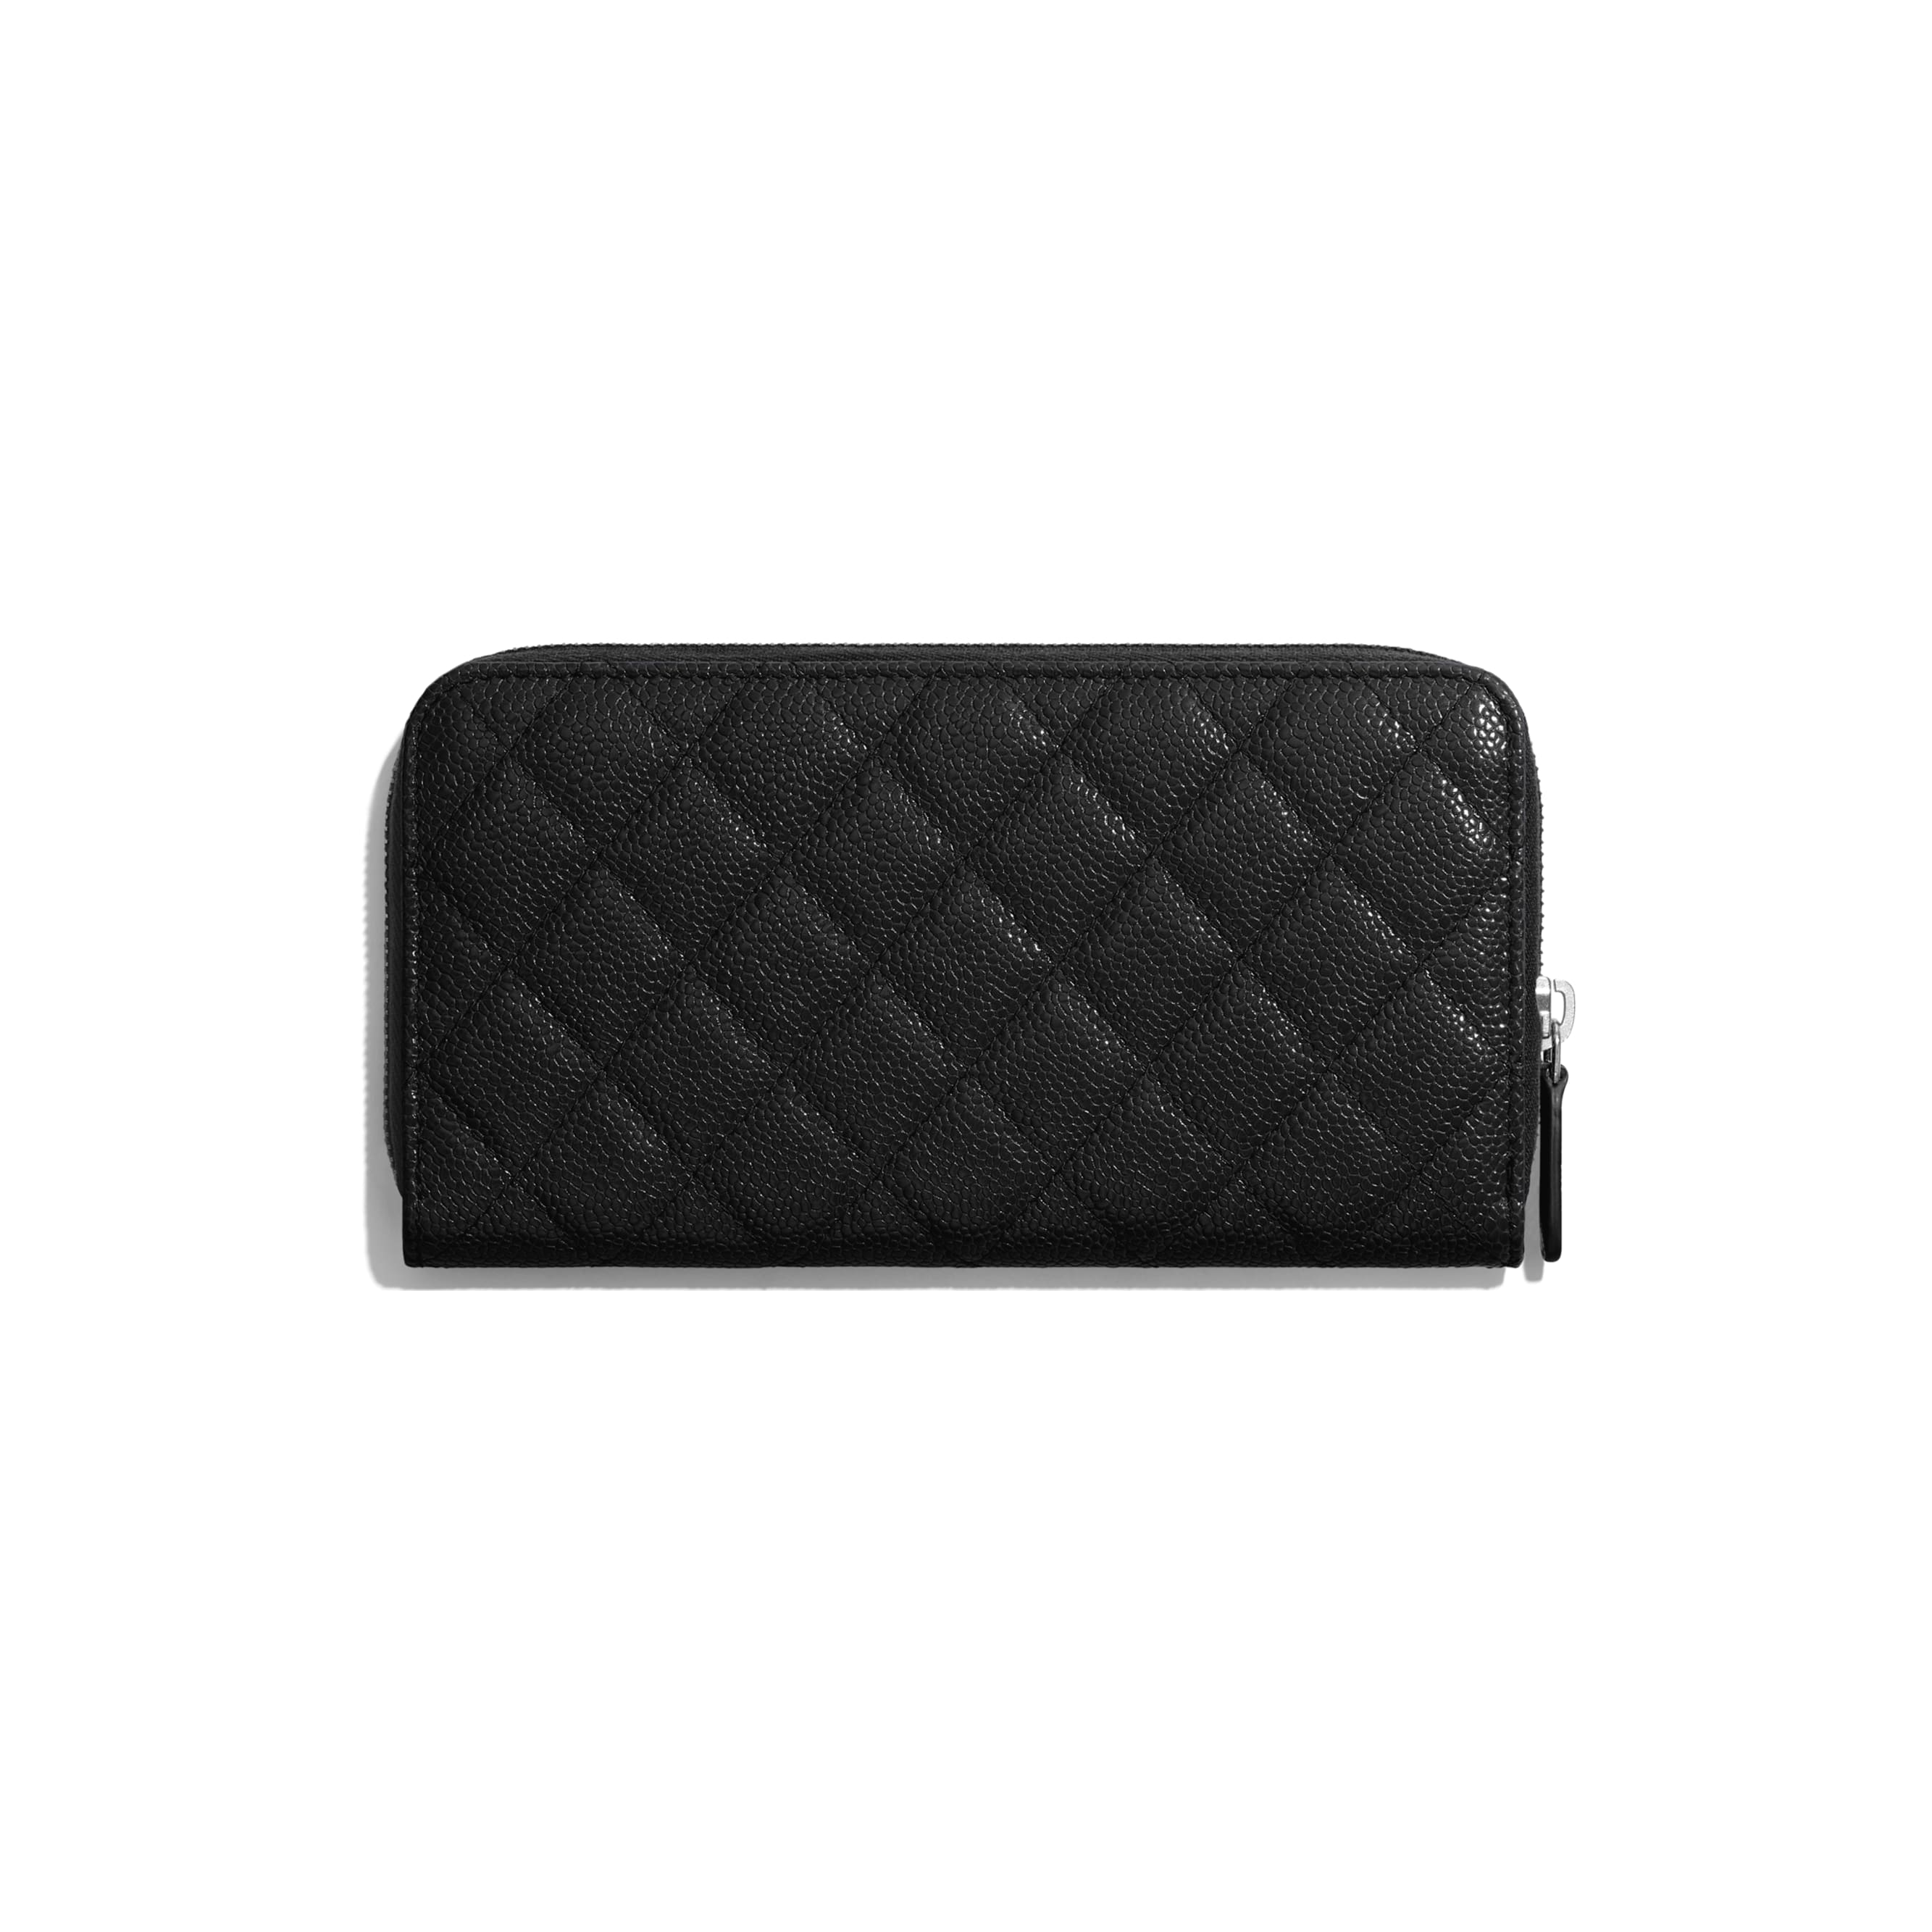 Long Zipped Wallet - Black - Grained Calfskin & Lacquered Metal - CHANEL - Alternative view - see standard sized version